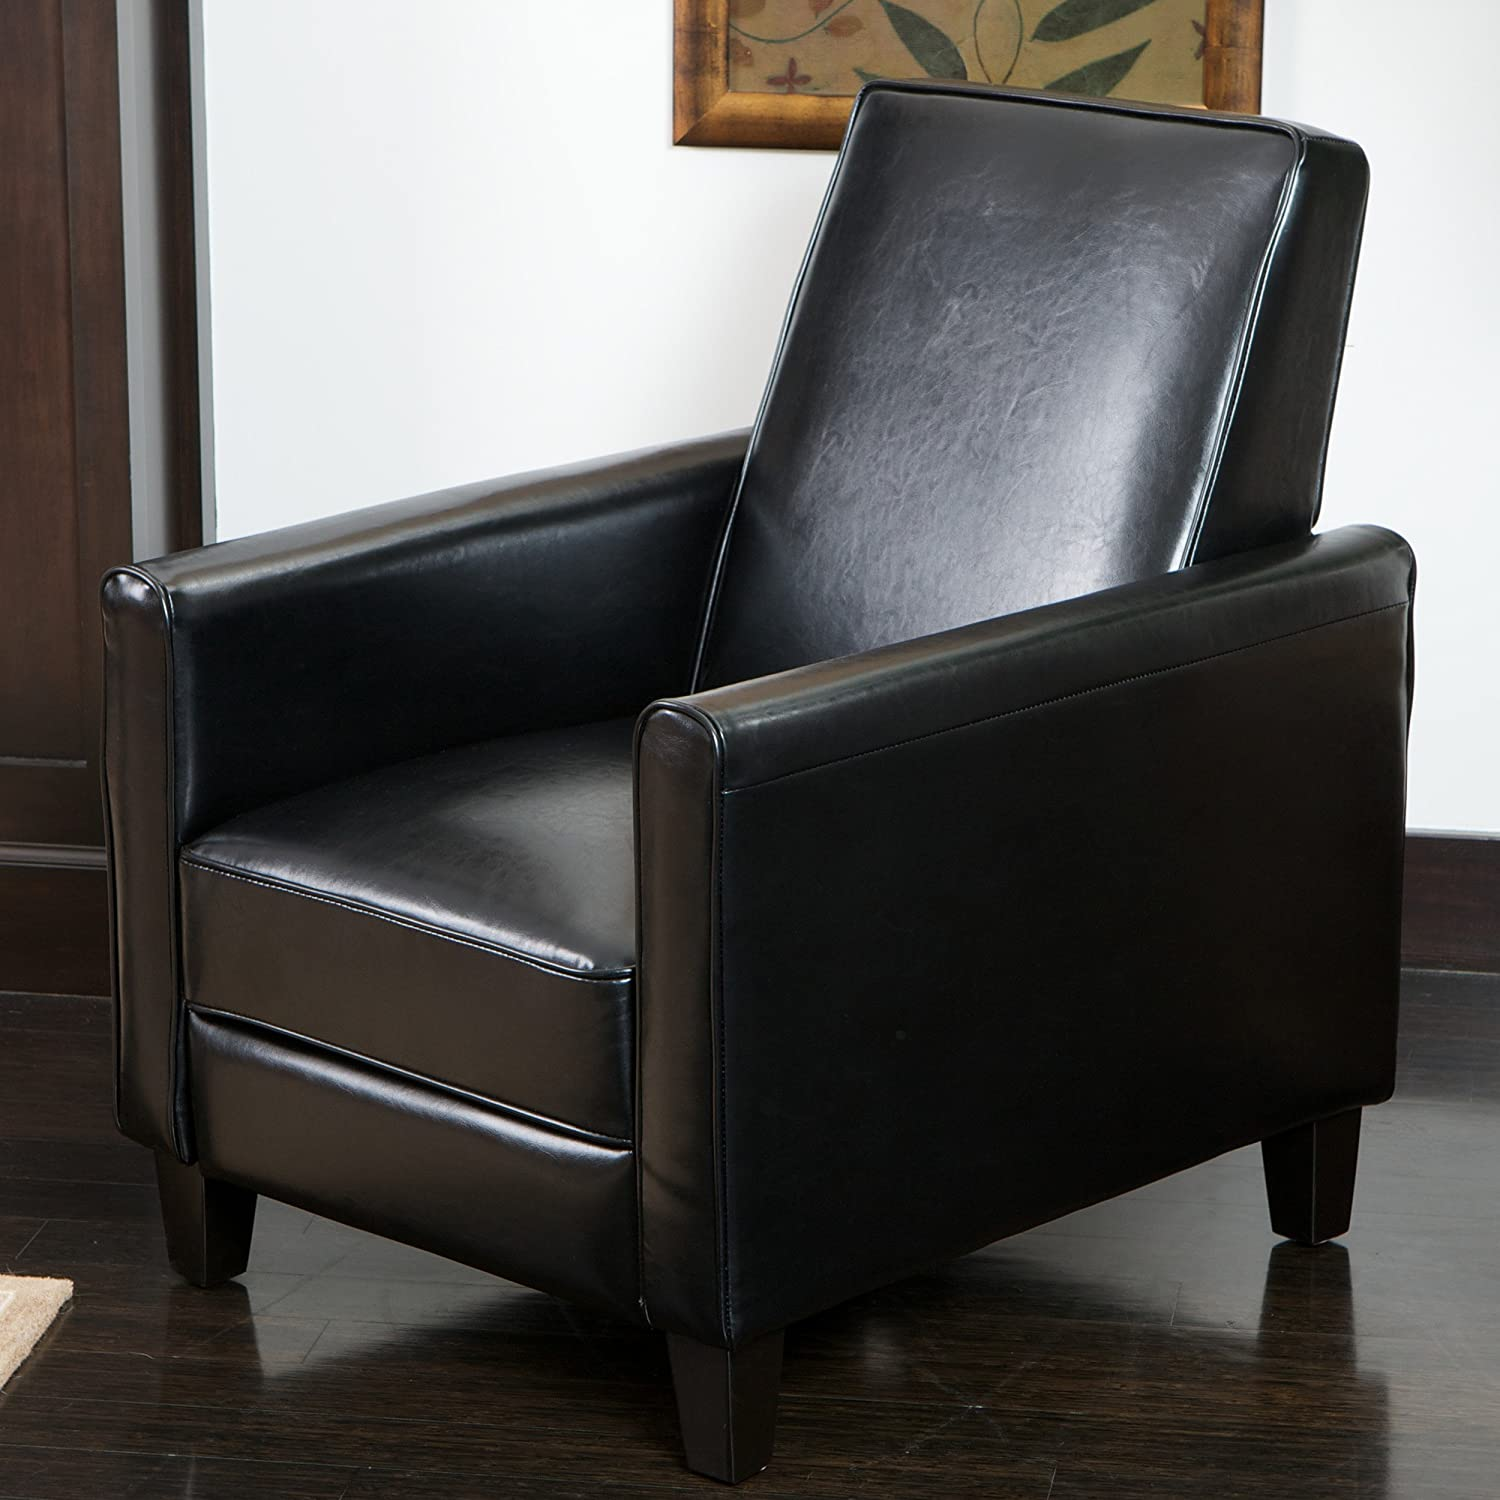 Amazon.com Lucas Space-Saving Leather Recliner | Perfect for Home or Office | Ideal Furnishing Option for Smaller Living Spaces Kitchen u0026 Dining & Amazon.com: Lucas Space-Saving Leather Recliner | Perfect for Home ... islam-shia.org